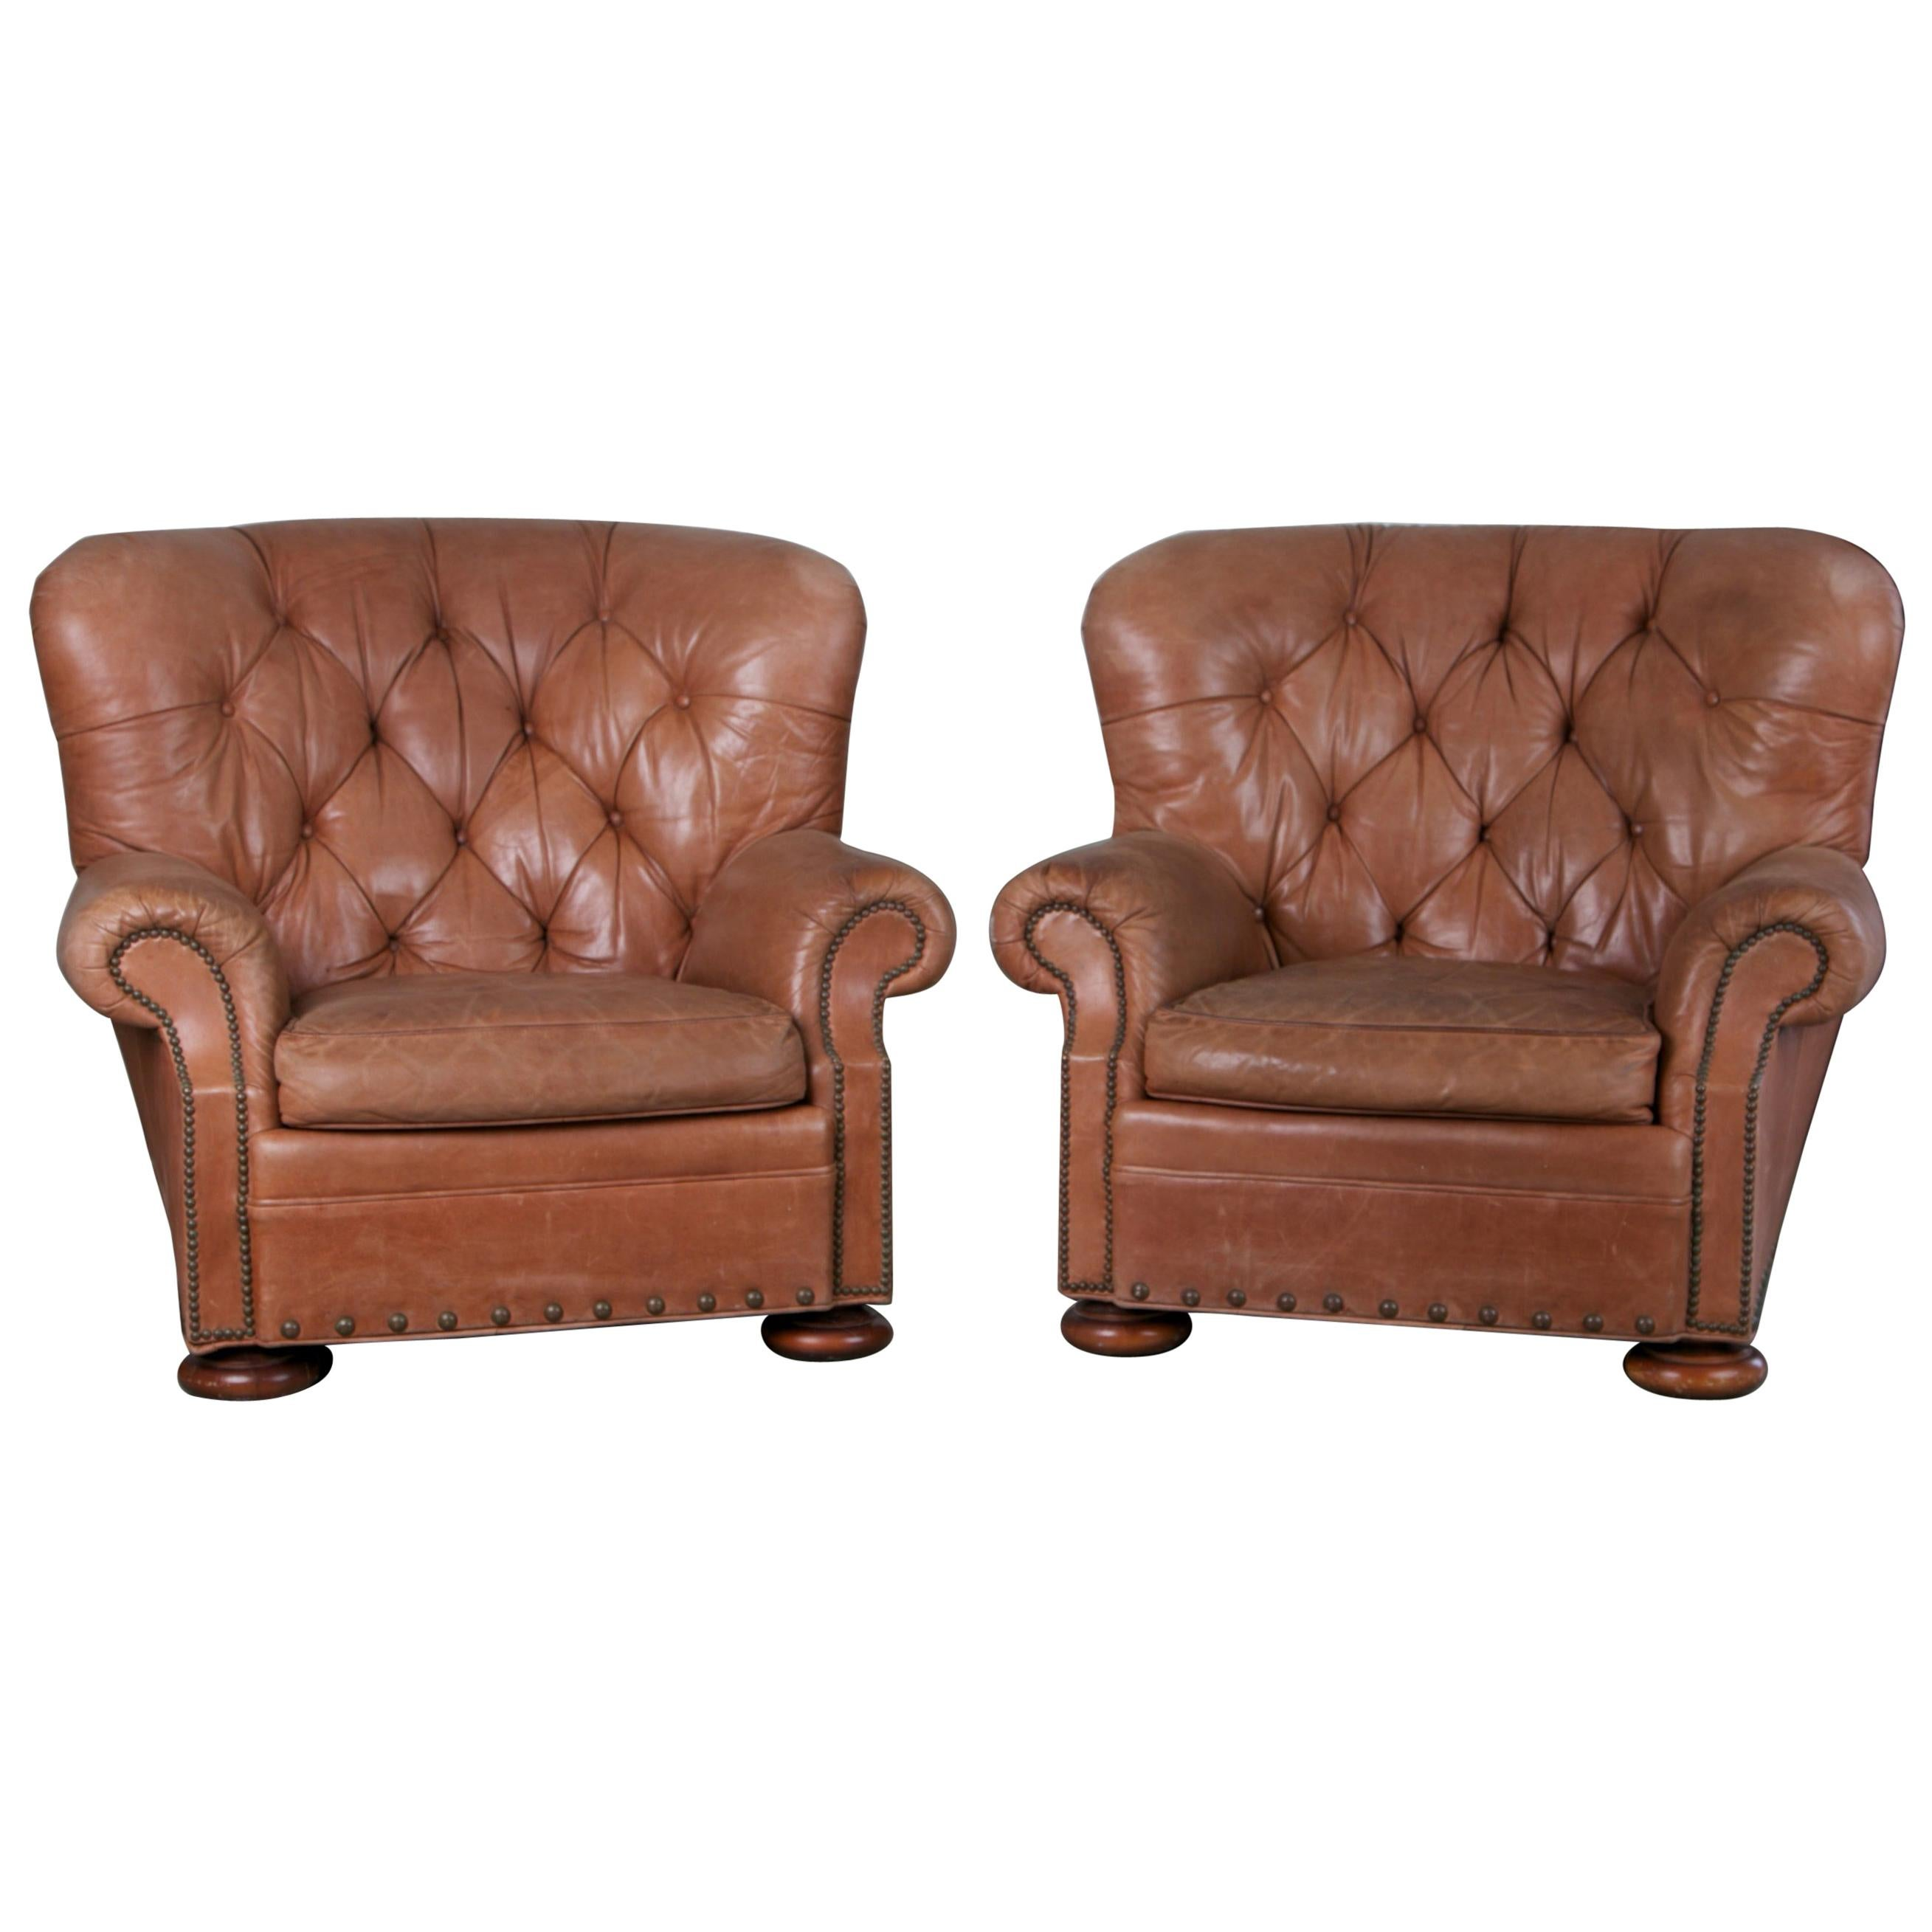 Pair Of Tufted Leather Armchairs The Style Of Ralph Lauren For Sale